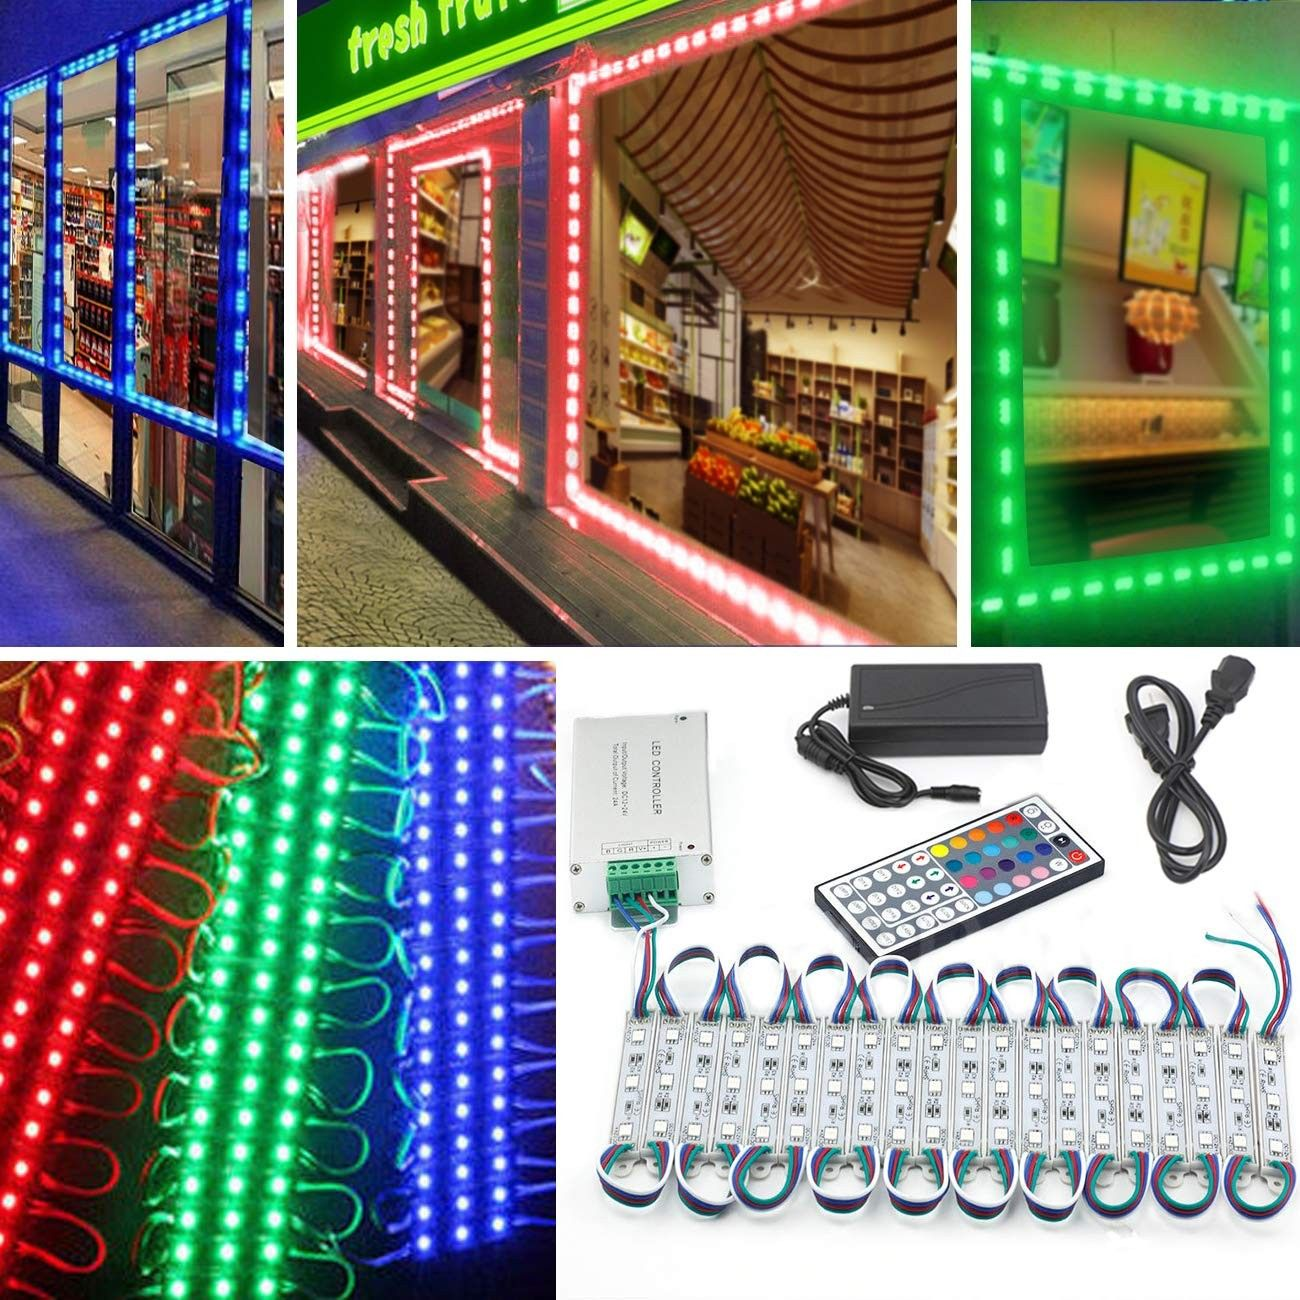 Led Storefront Lights 10ft 20 Pieces Waterproof Decorative Light For Letter Sign Advertising Signs Led Light Module Led Module Store Front Window Sign Strip Lig Light Decorations Window Signs Store Front Windows